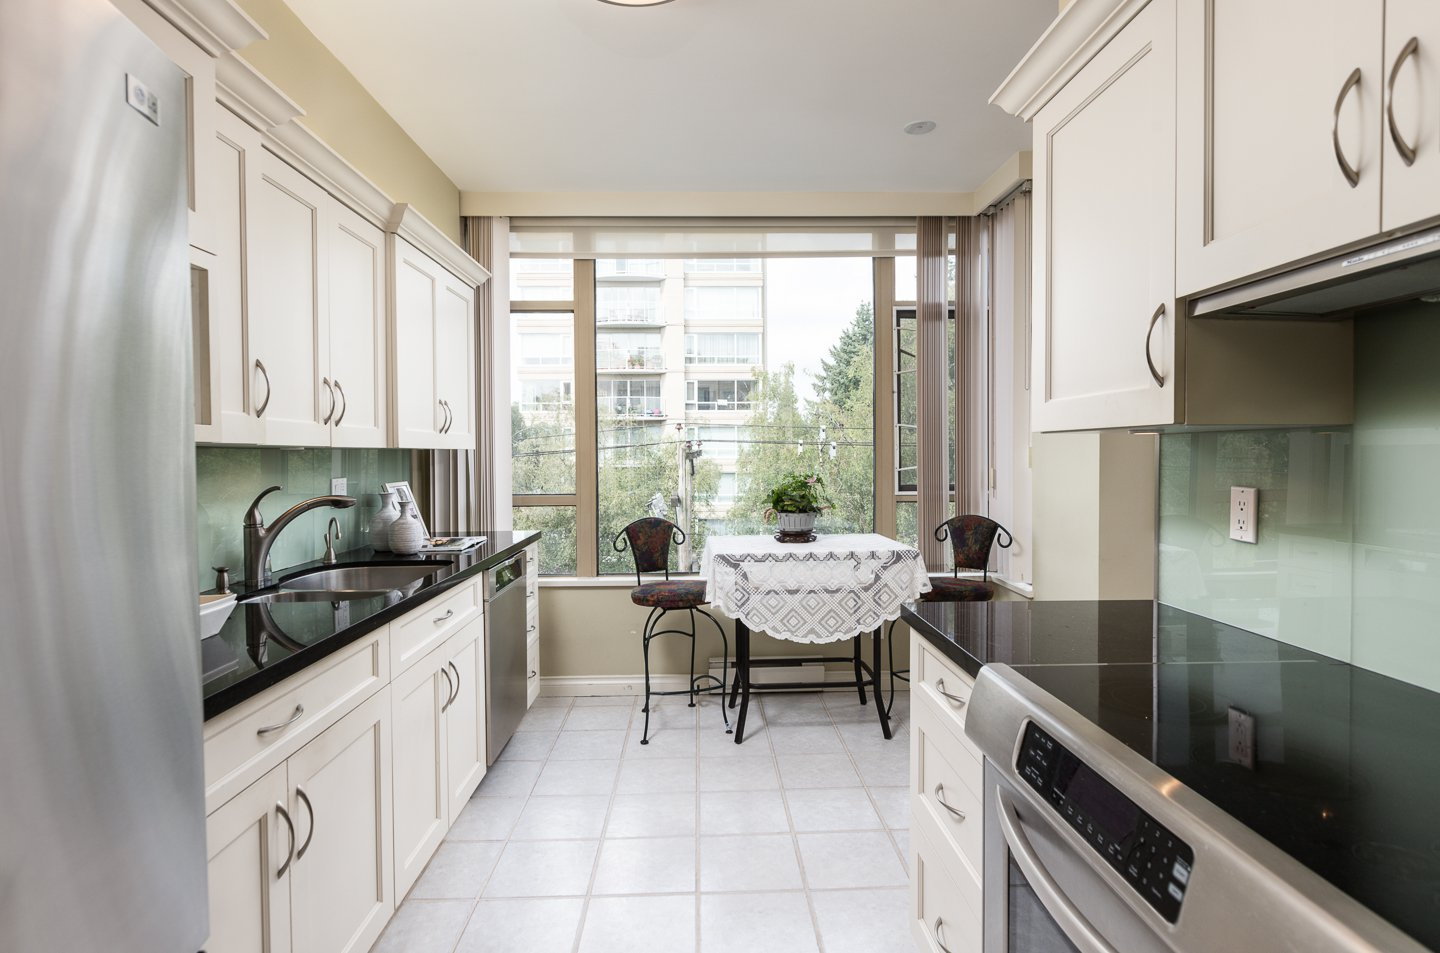 Photo 7: Photos: 401-2580 TOLMIE ST in VANCOUVER: Point Grey Condo for sale (Vancouver West)  : MLS®# R2397003